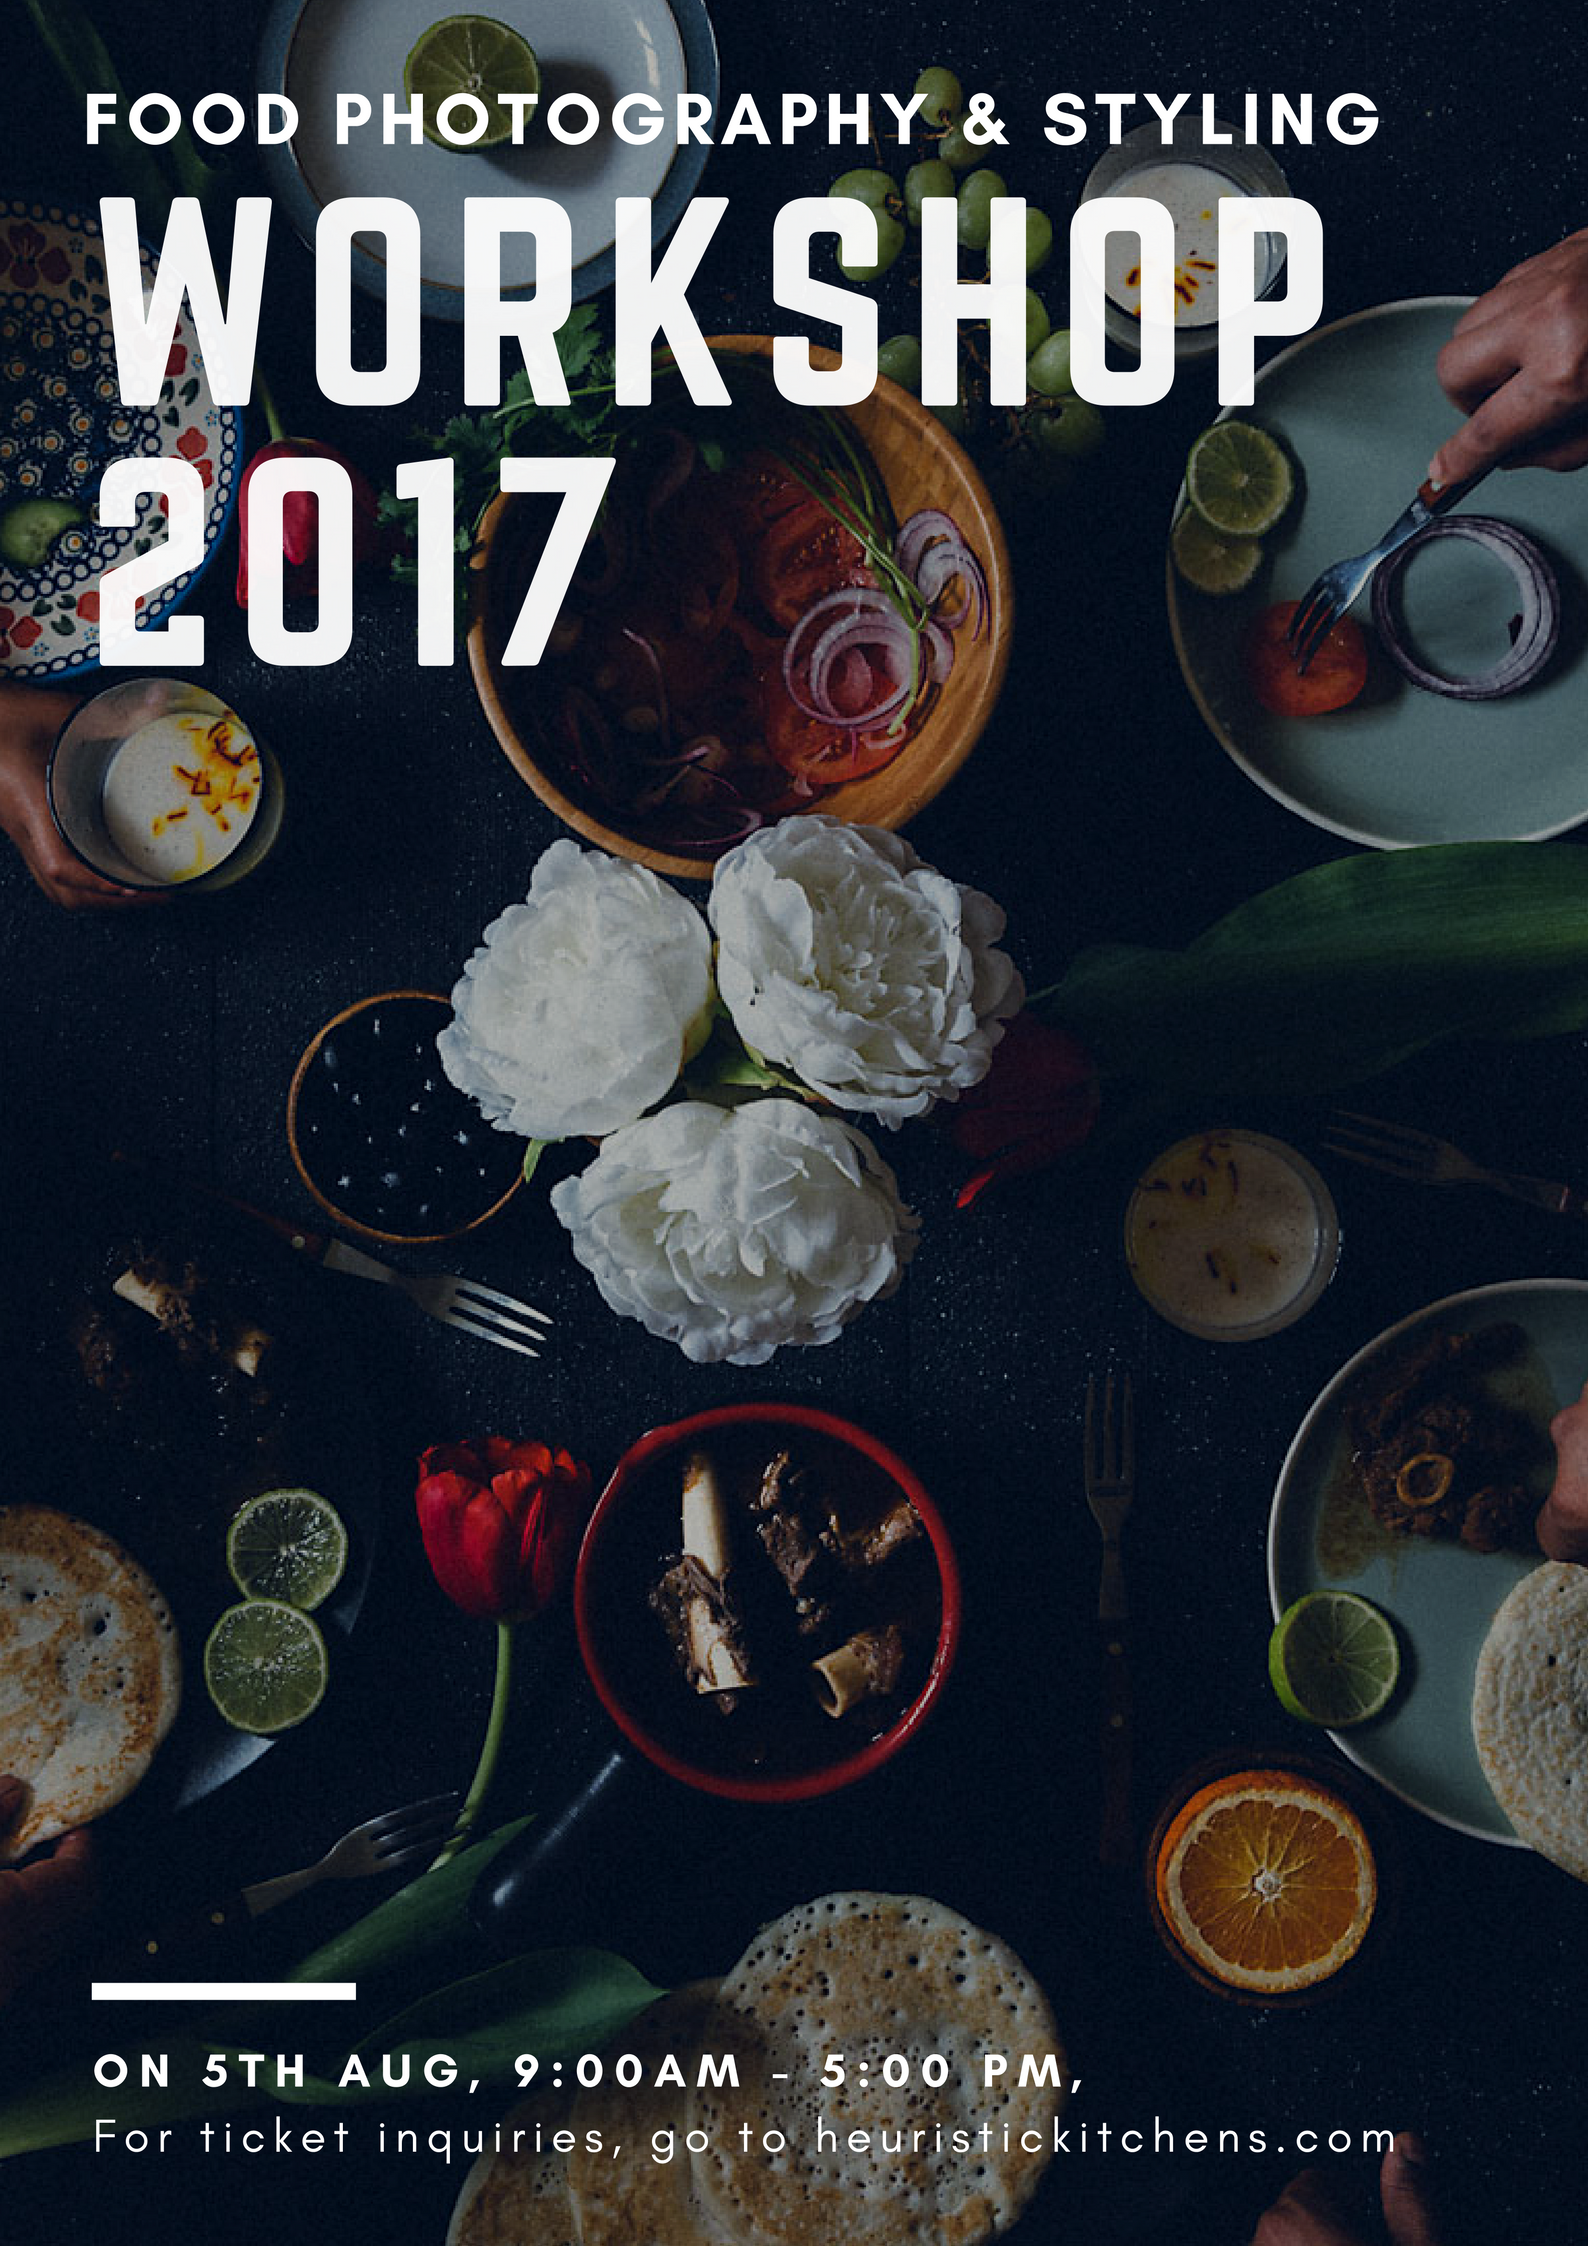 Heuristic Kitchens | Food Photography and Styling workshop 2017 | http://www.heuristickitchens.com